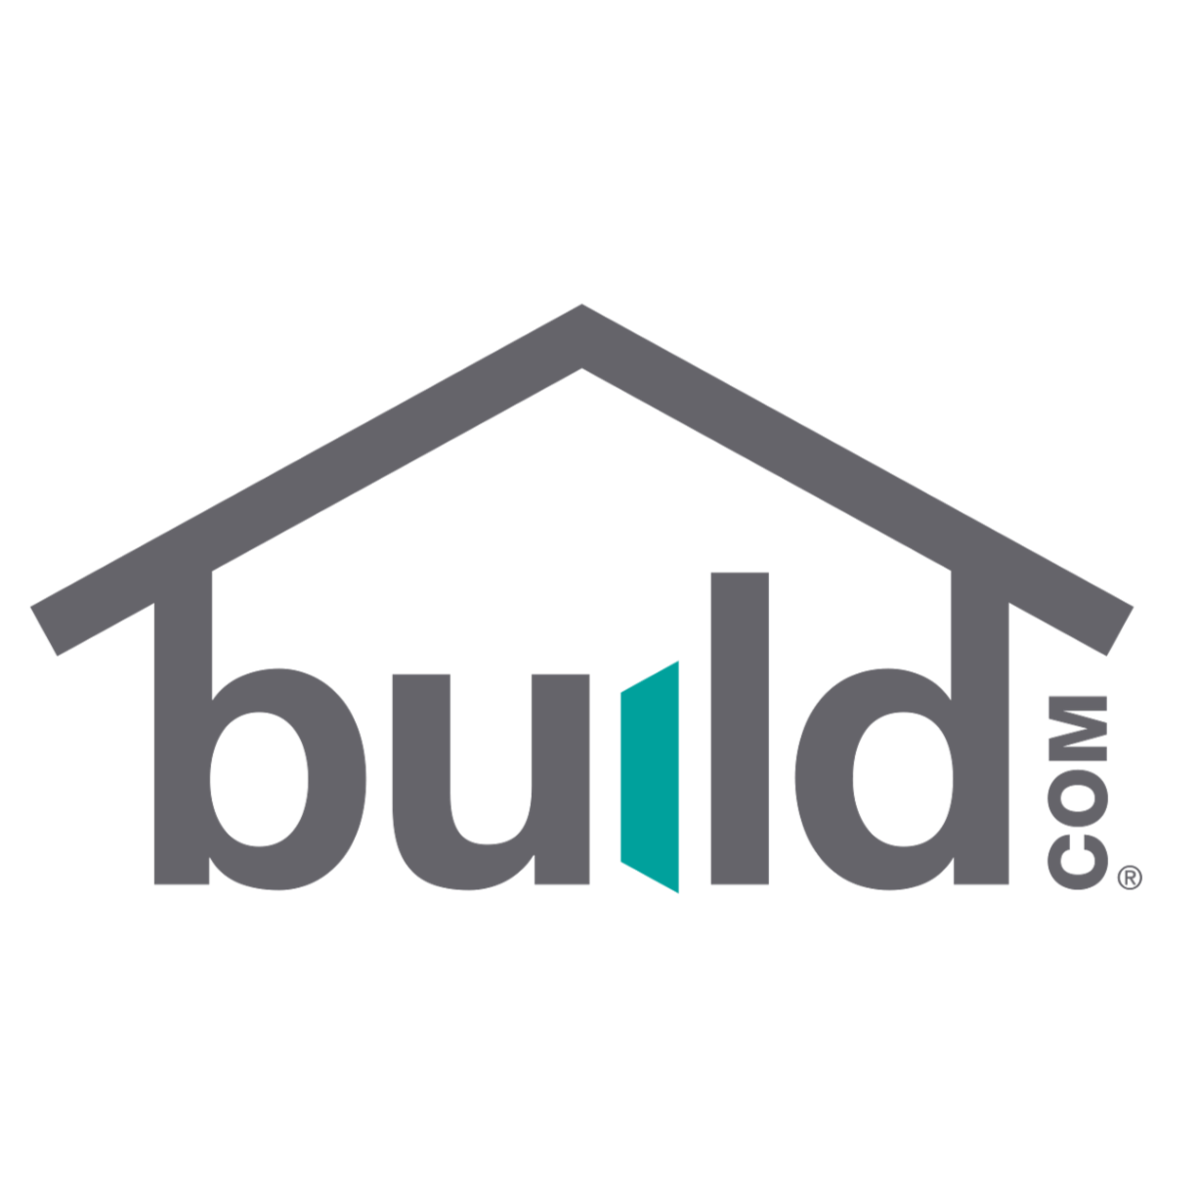 Build.com coupons and promo codes